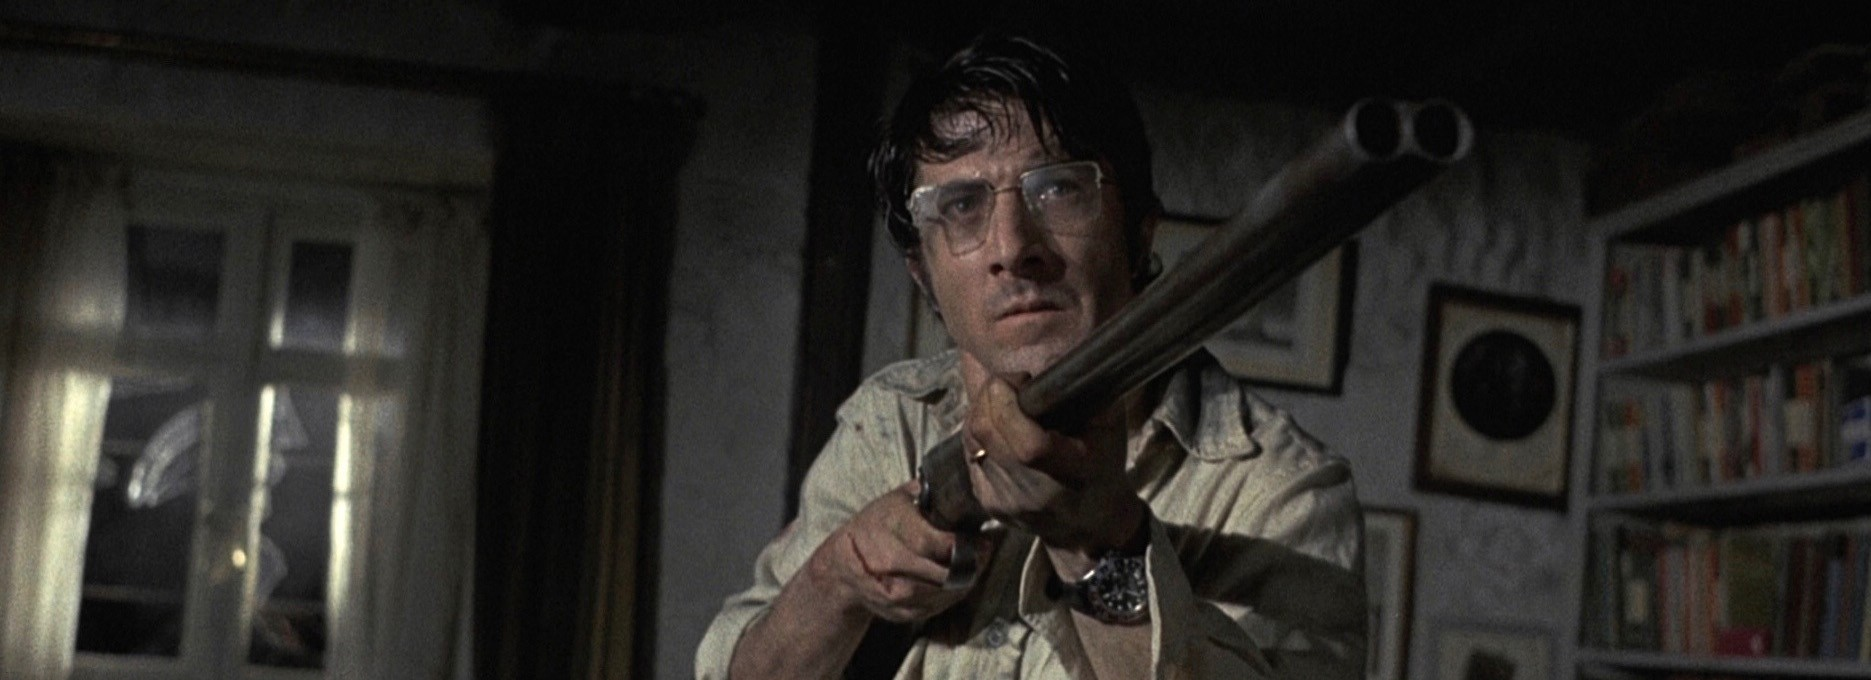 Straw Dogs Criterion Blu Review